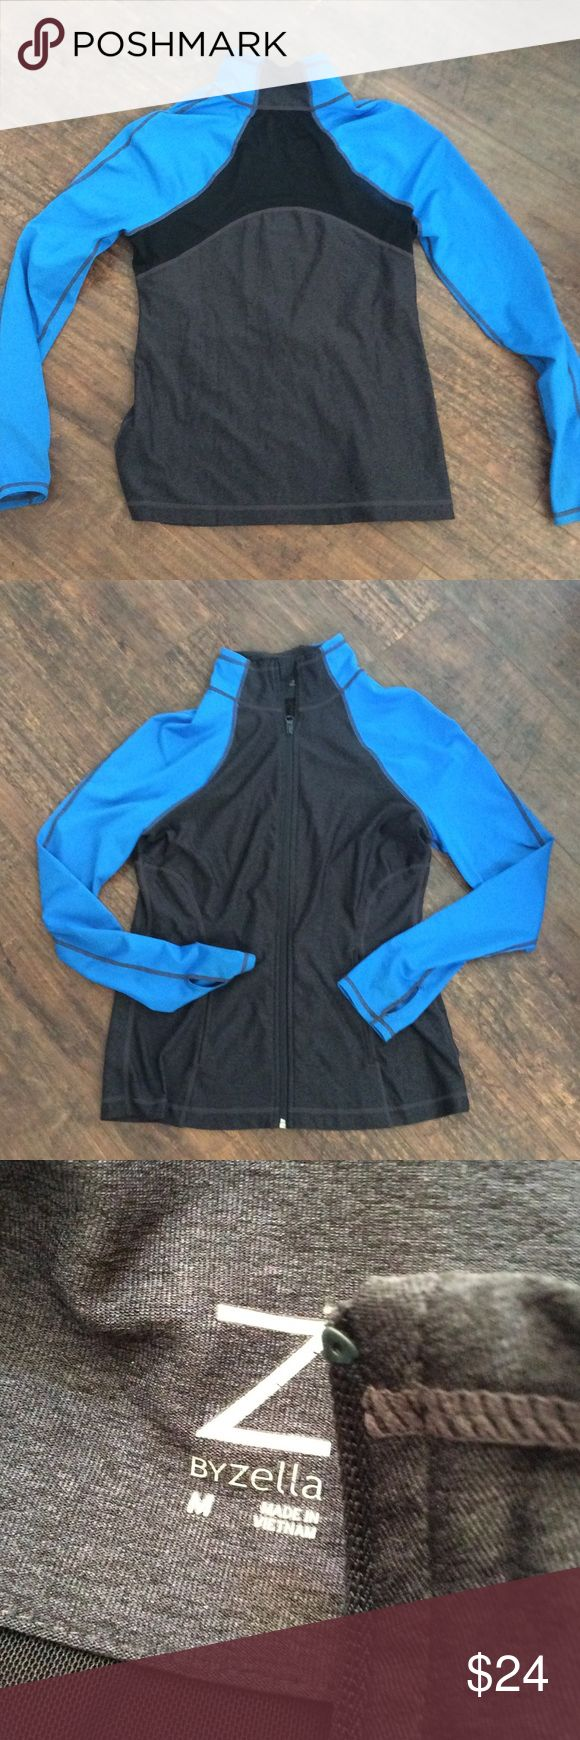 Zella mesh back workout zip front jacket M Mesh back is see thru making it sexy and fun. This brand is an amazing fit and quality like lululemon. Z by Zella is nord rack version. Worn maybe once if at all Zella Jackets & Coats